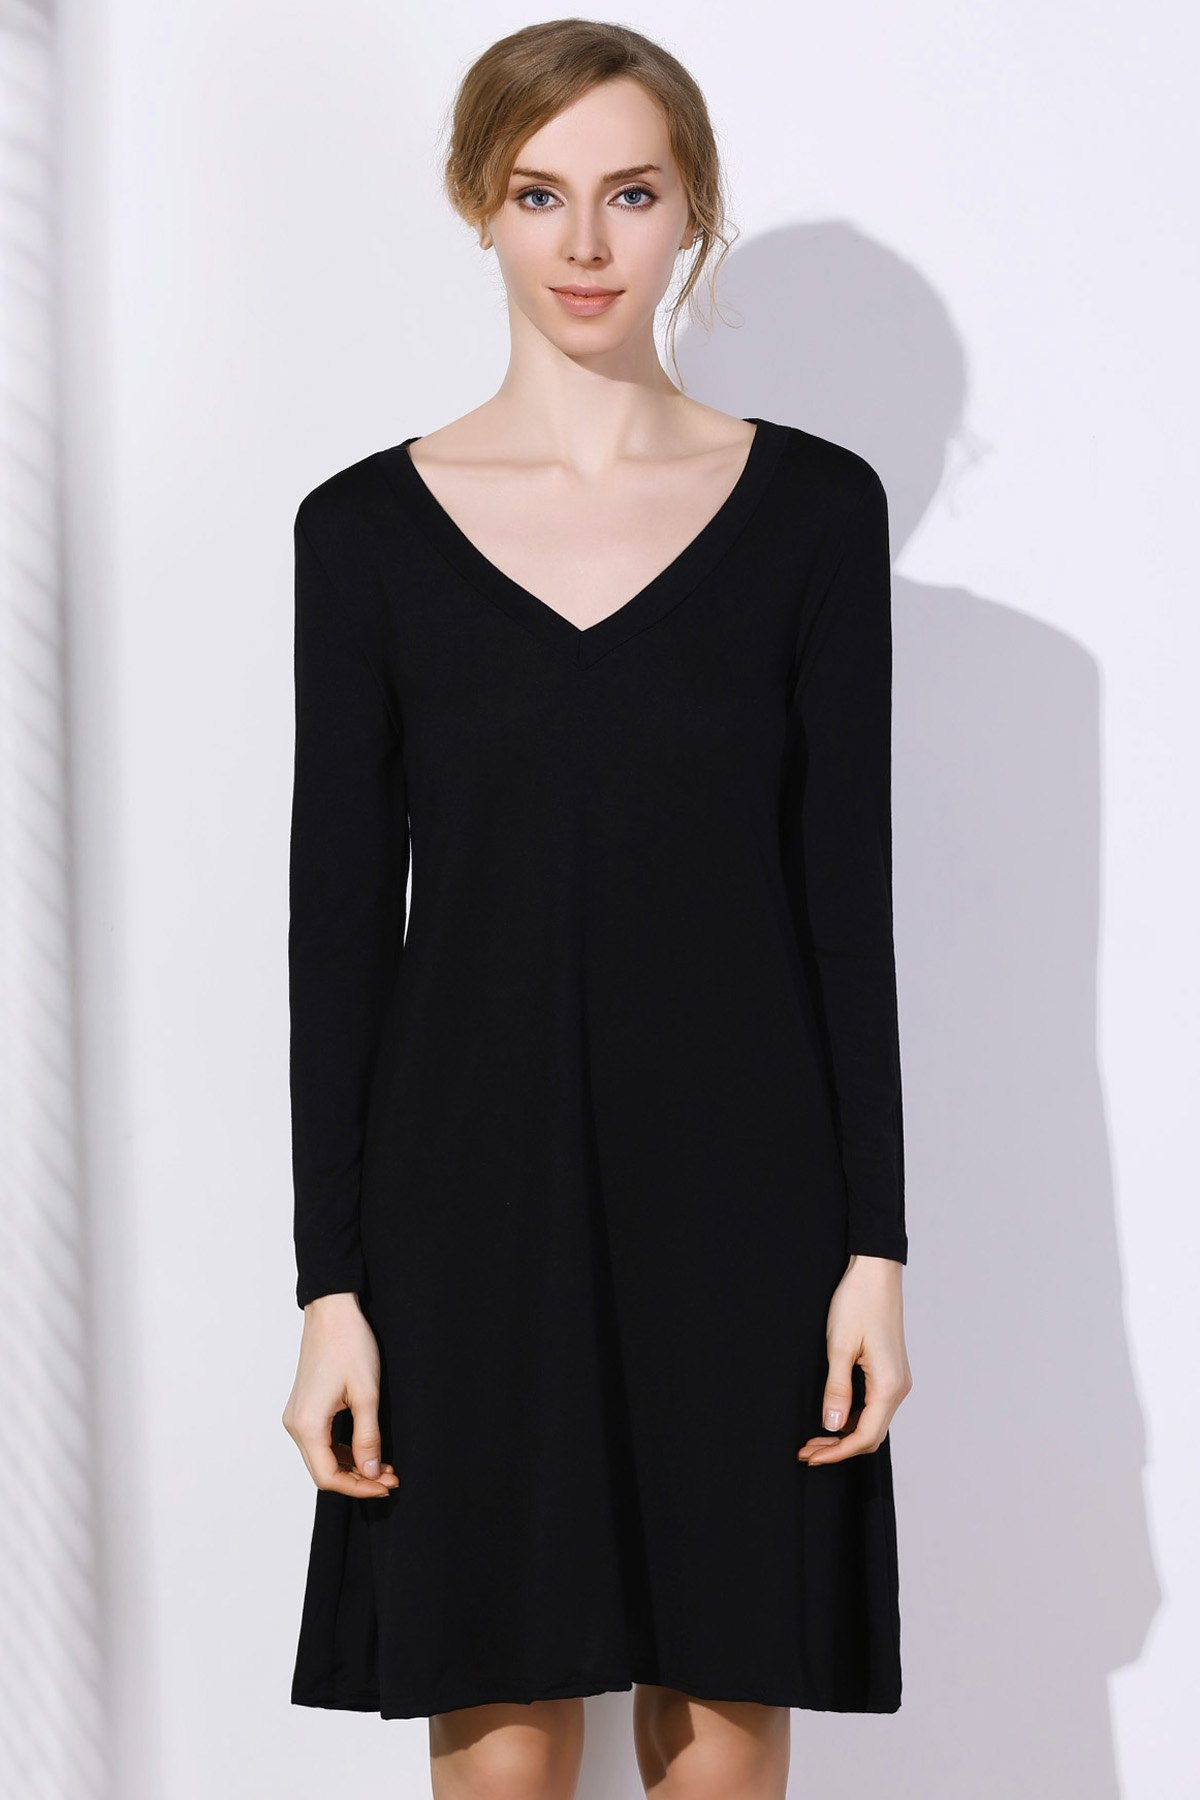 Trendy Simple Plunging Neck Long Sleeve Pure Color Women's Dress